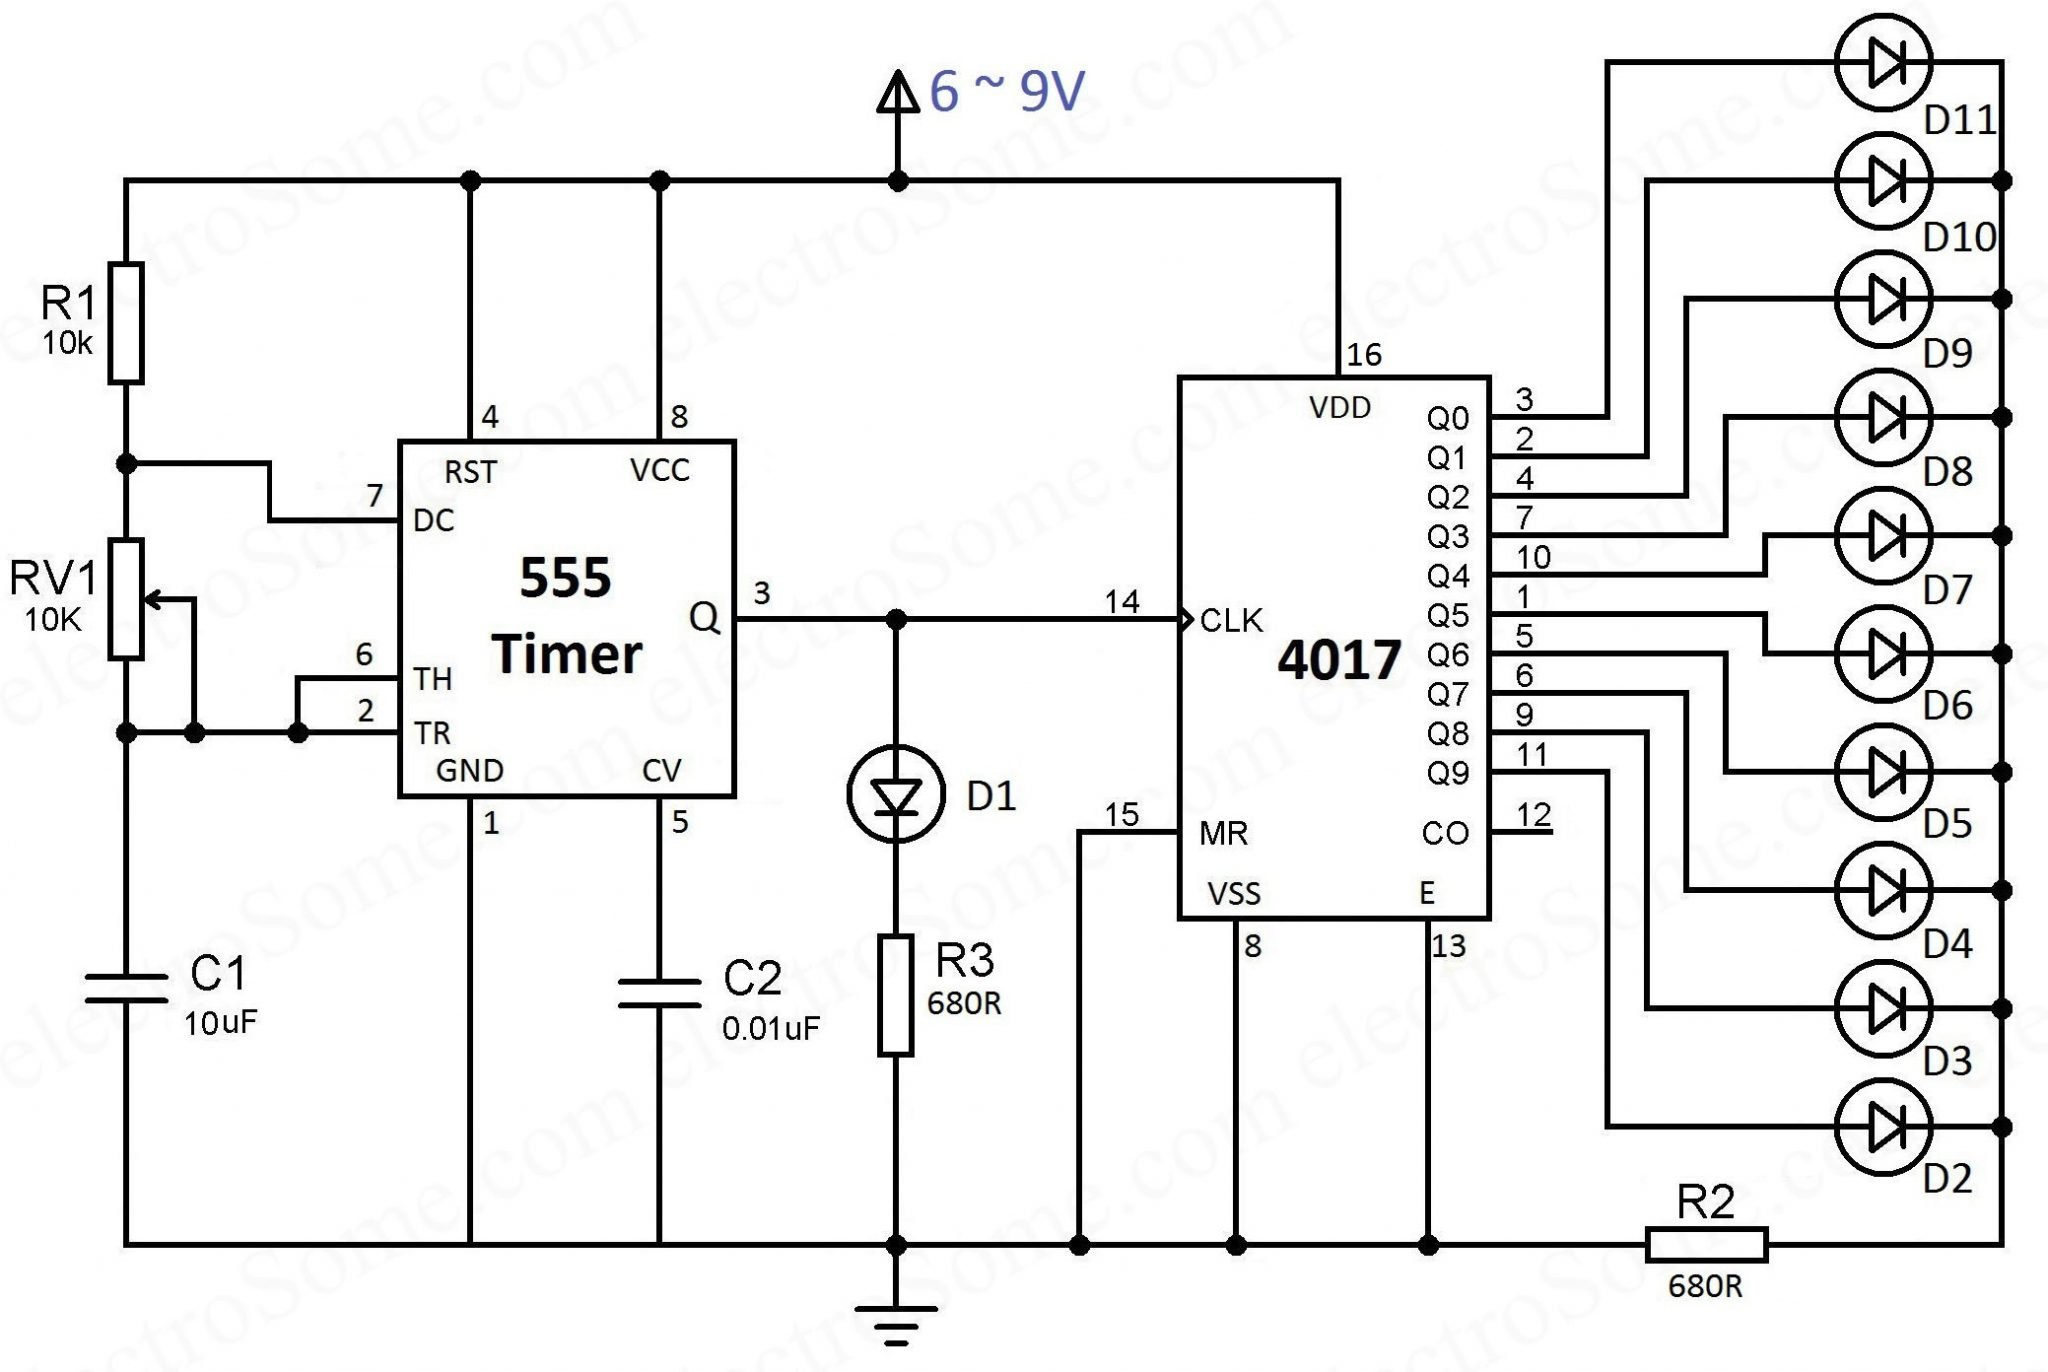 Led Chaser Using 4017 Counter And 555 Timer Pwm Controller With Chip